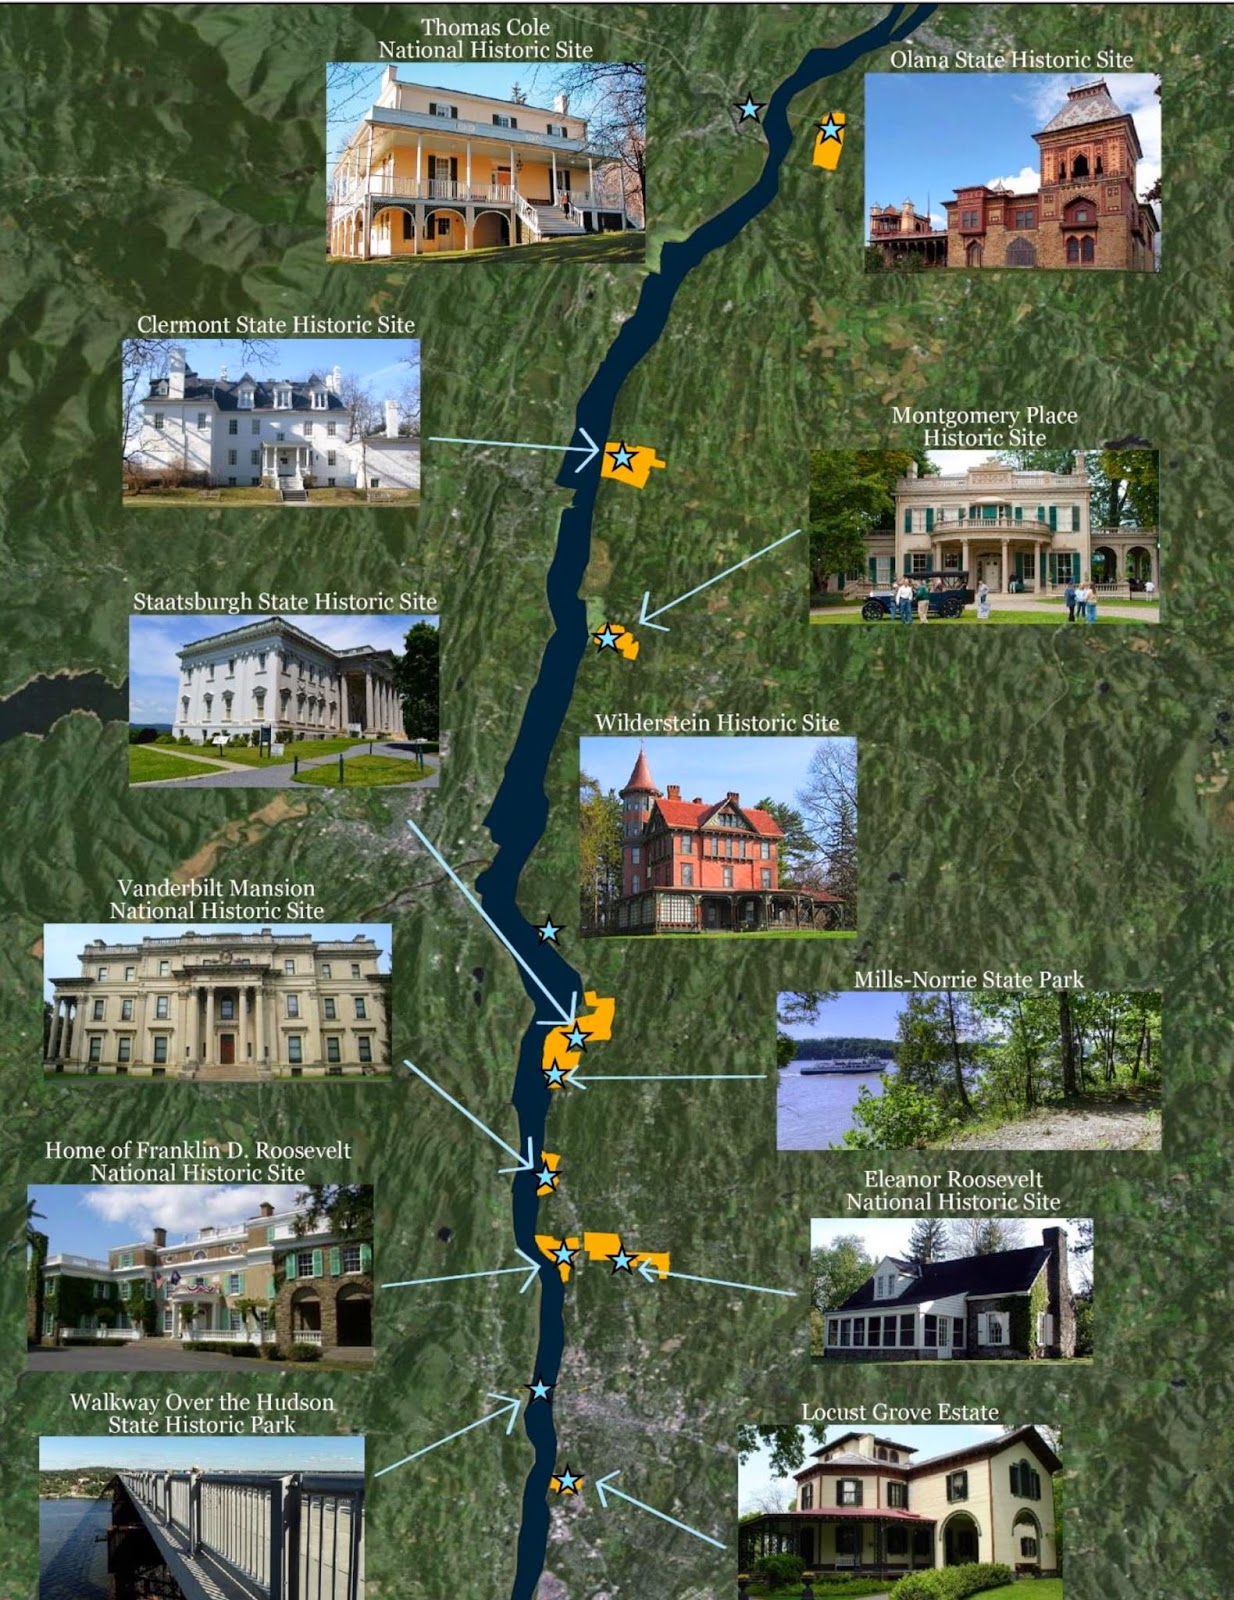 google maps history iphone with 96669 Hudson River Historic District on Stadtplan Graz Der Stadtplan Graz Verfügt über Einen Großen as well India Google Maps Fine Imprison together with Theworldofhistory wordpress furthermore Puerto Rico No Power Hurricane Maria likewise Clipart 66352.